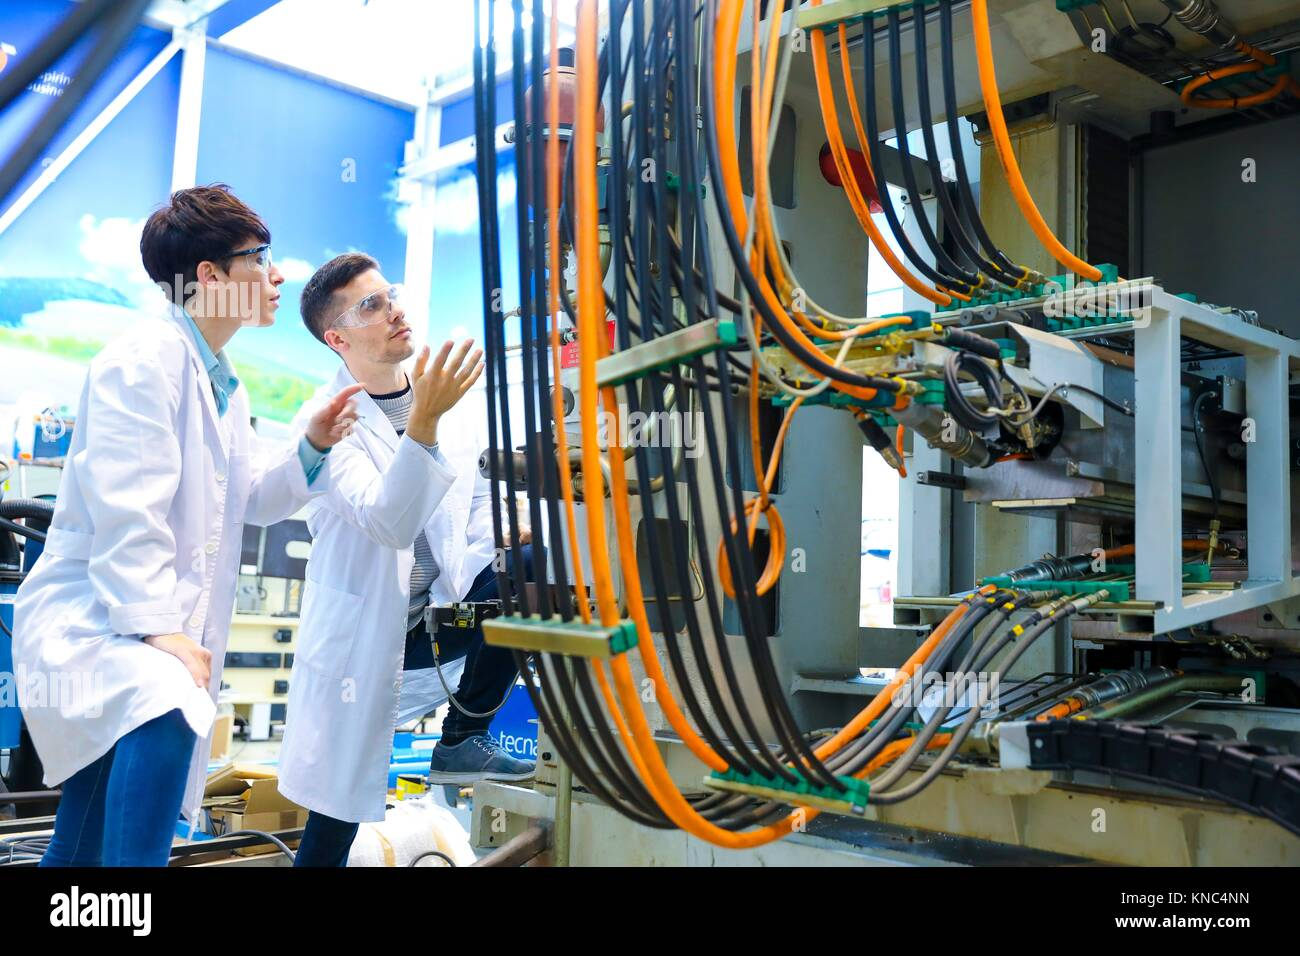 Researchers in machining center, Industry, Tecnalia Research & innovation, Technology and Research Centre, Miramon - Stock Image